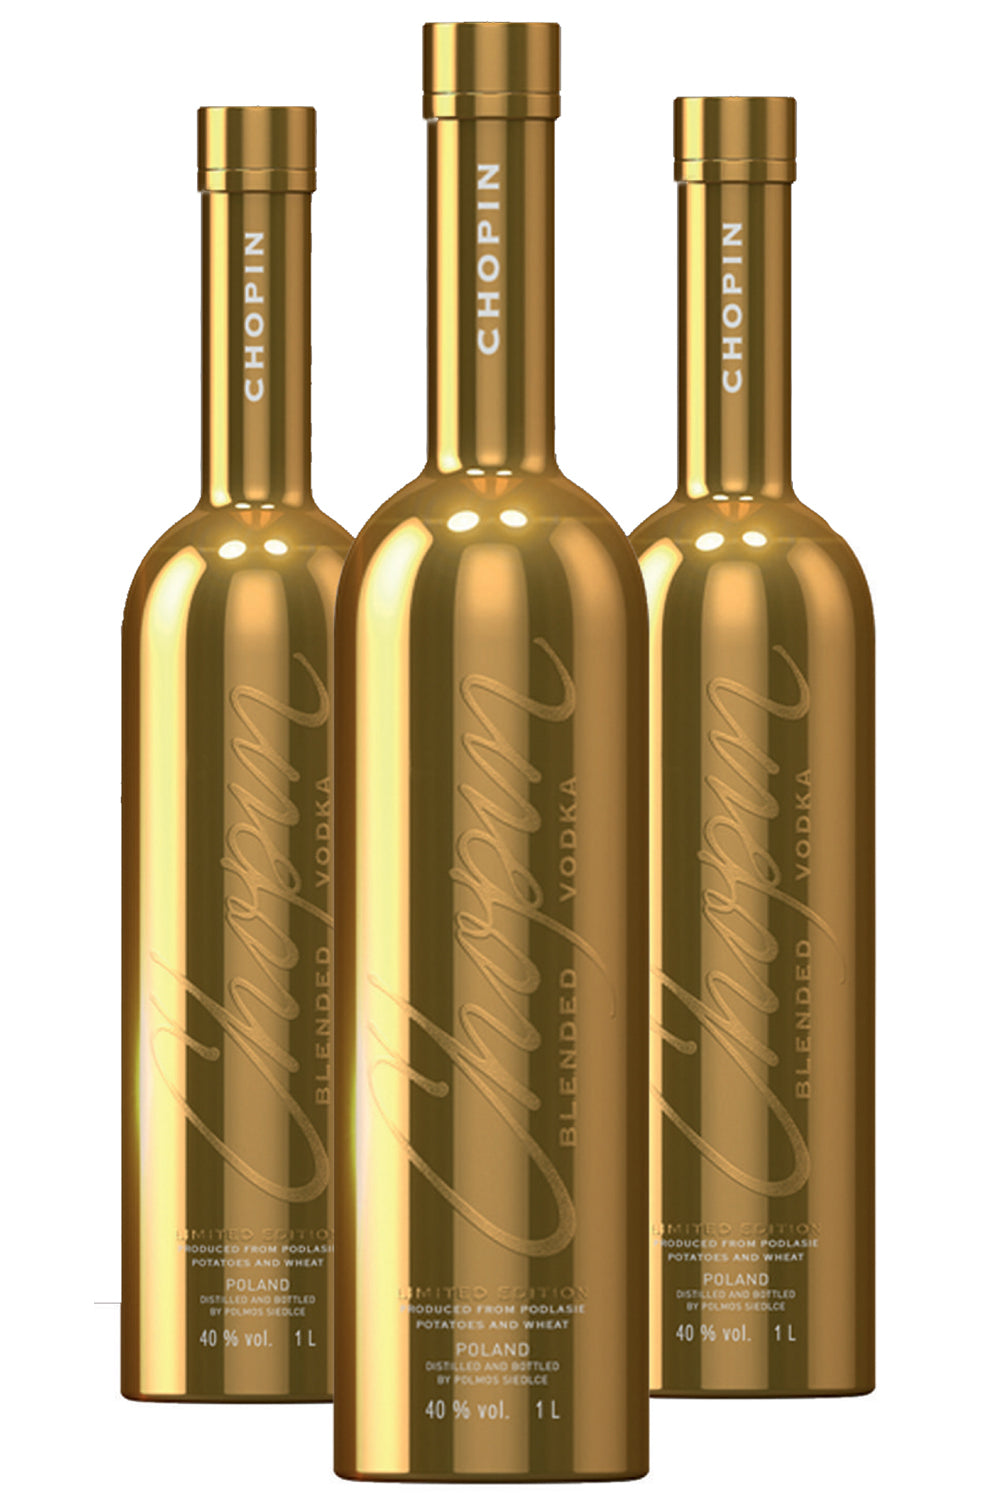 CHOPIN BLENDED VODKA LIMITED EDITION GOLD